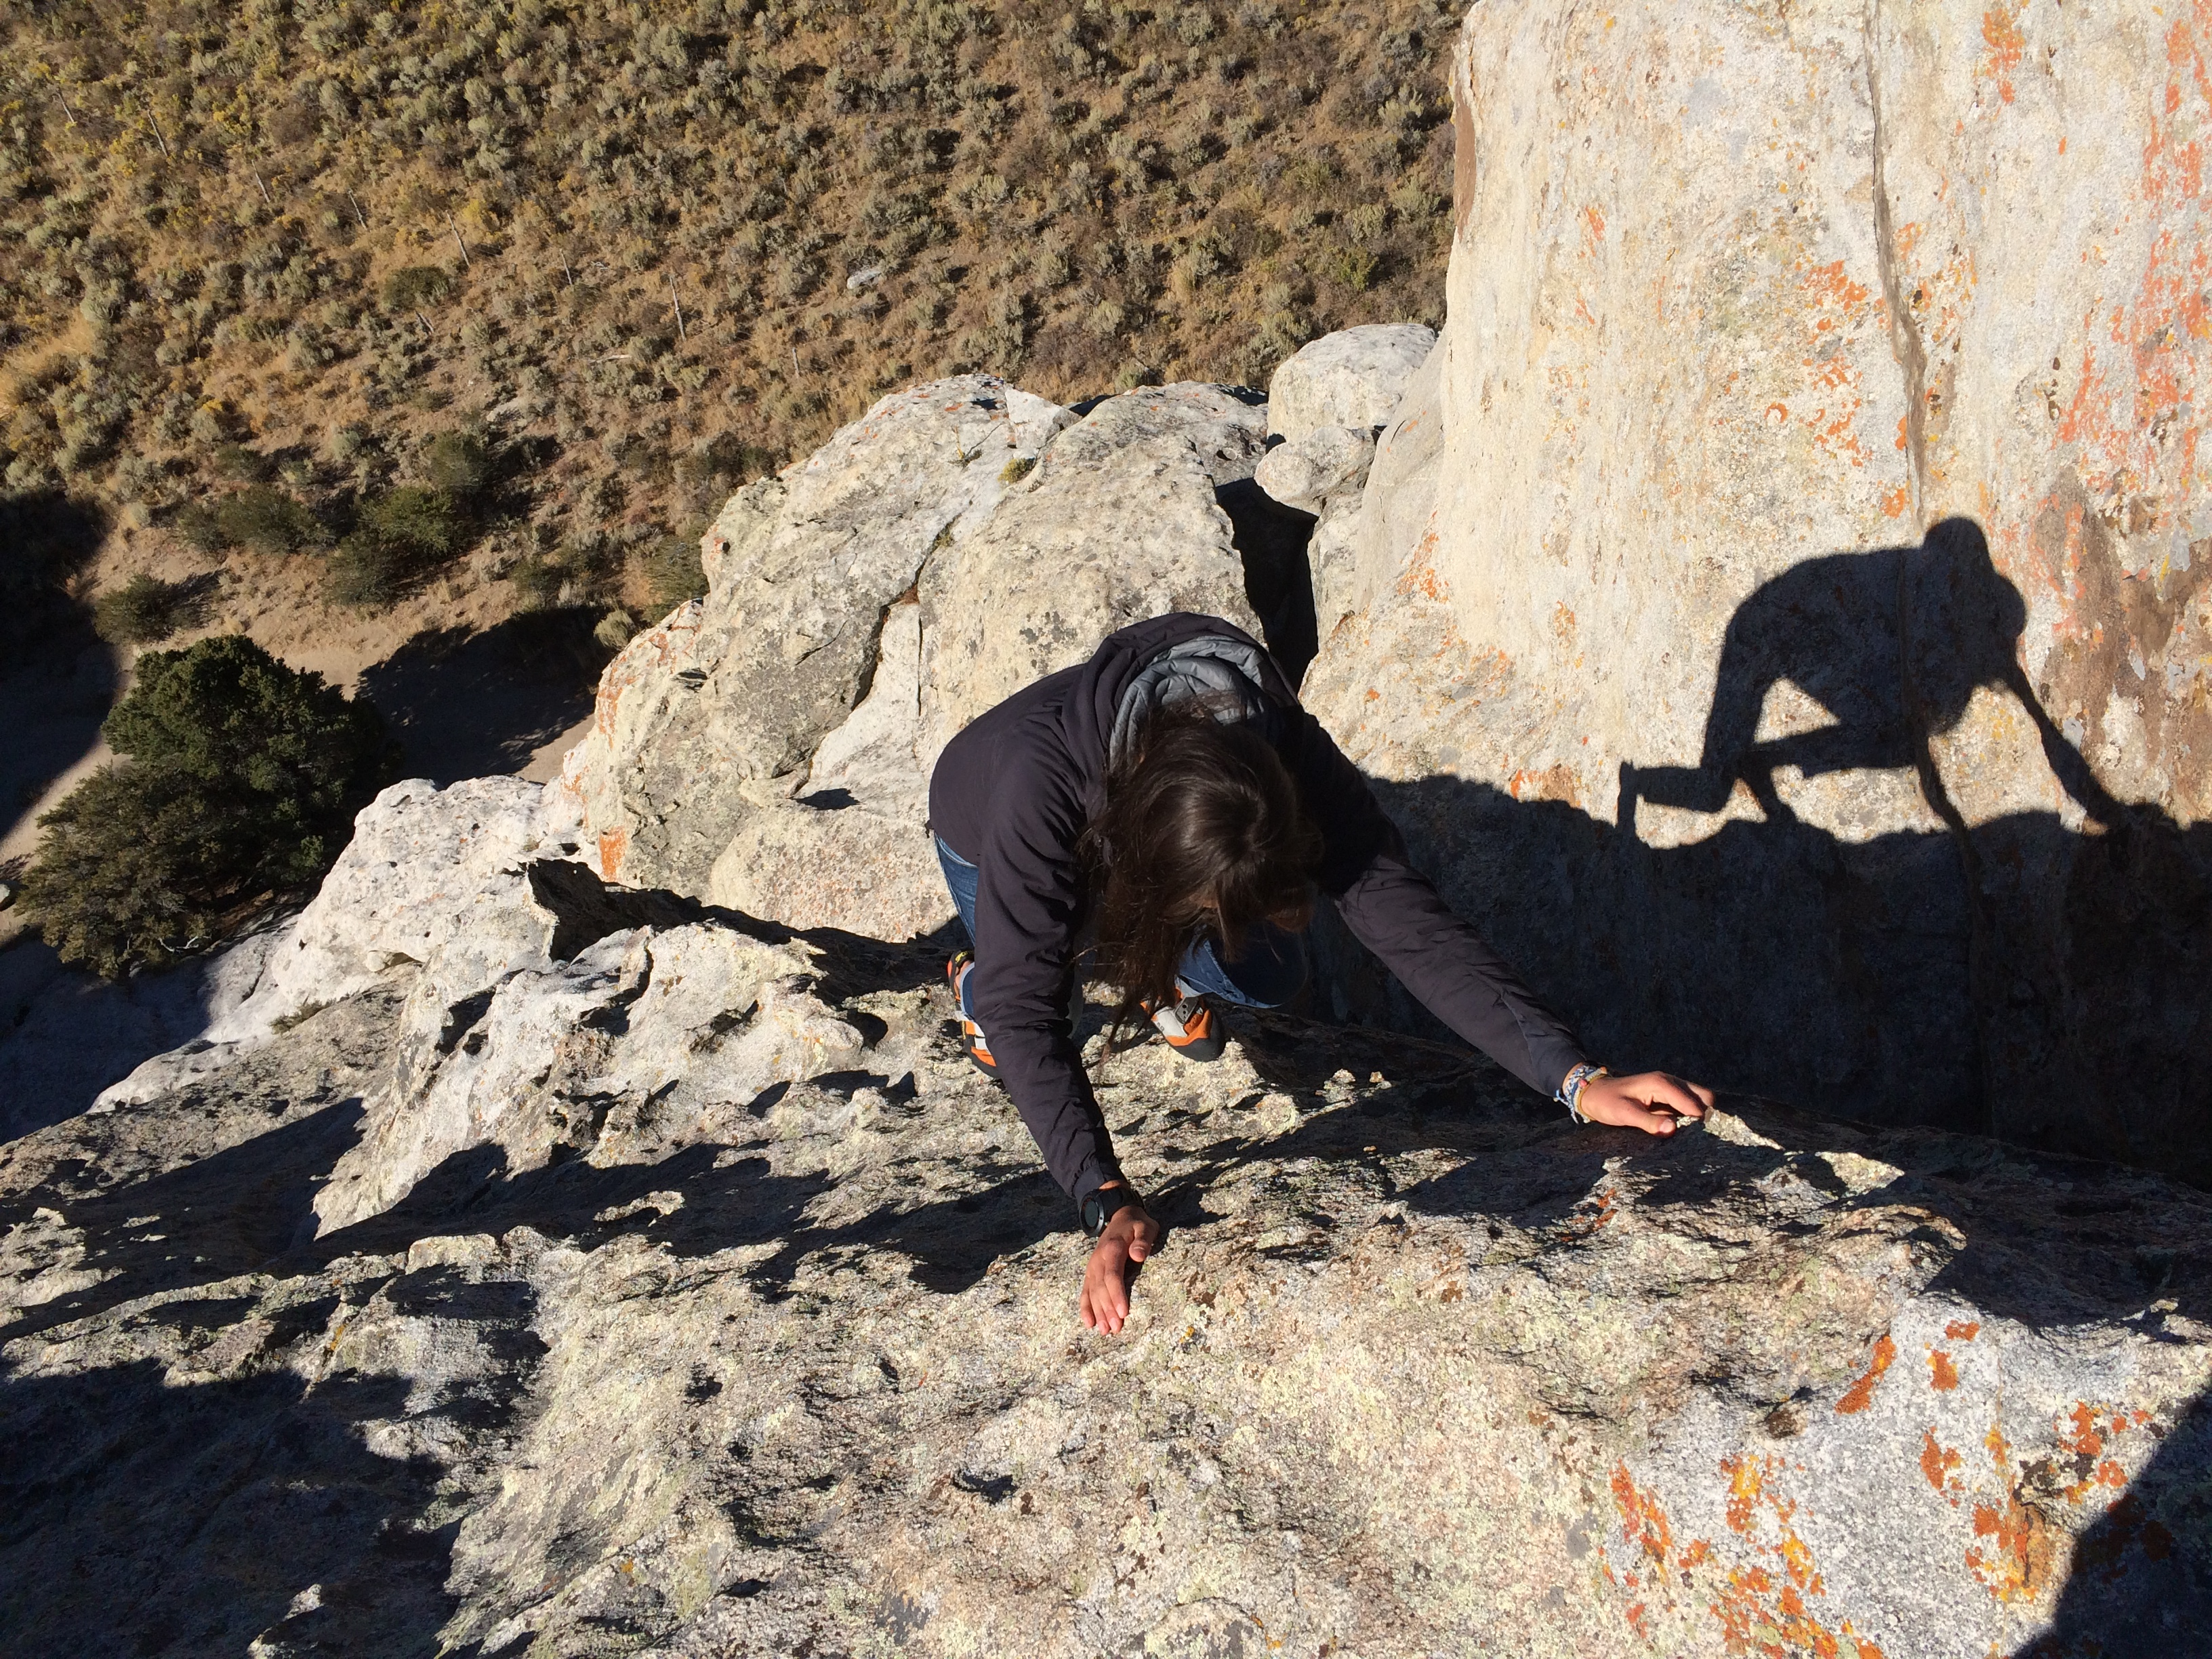 Soloing on the back side of Bath Rock, 5.1. Impeccable granite!